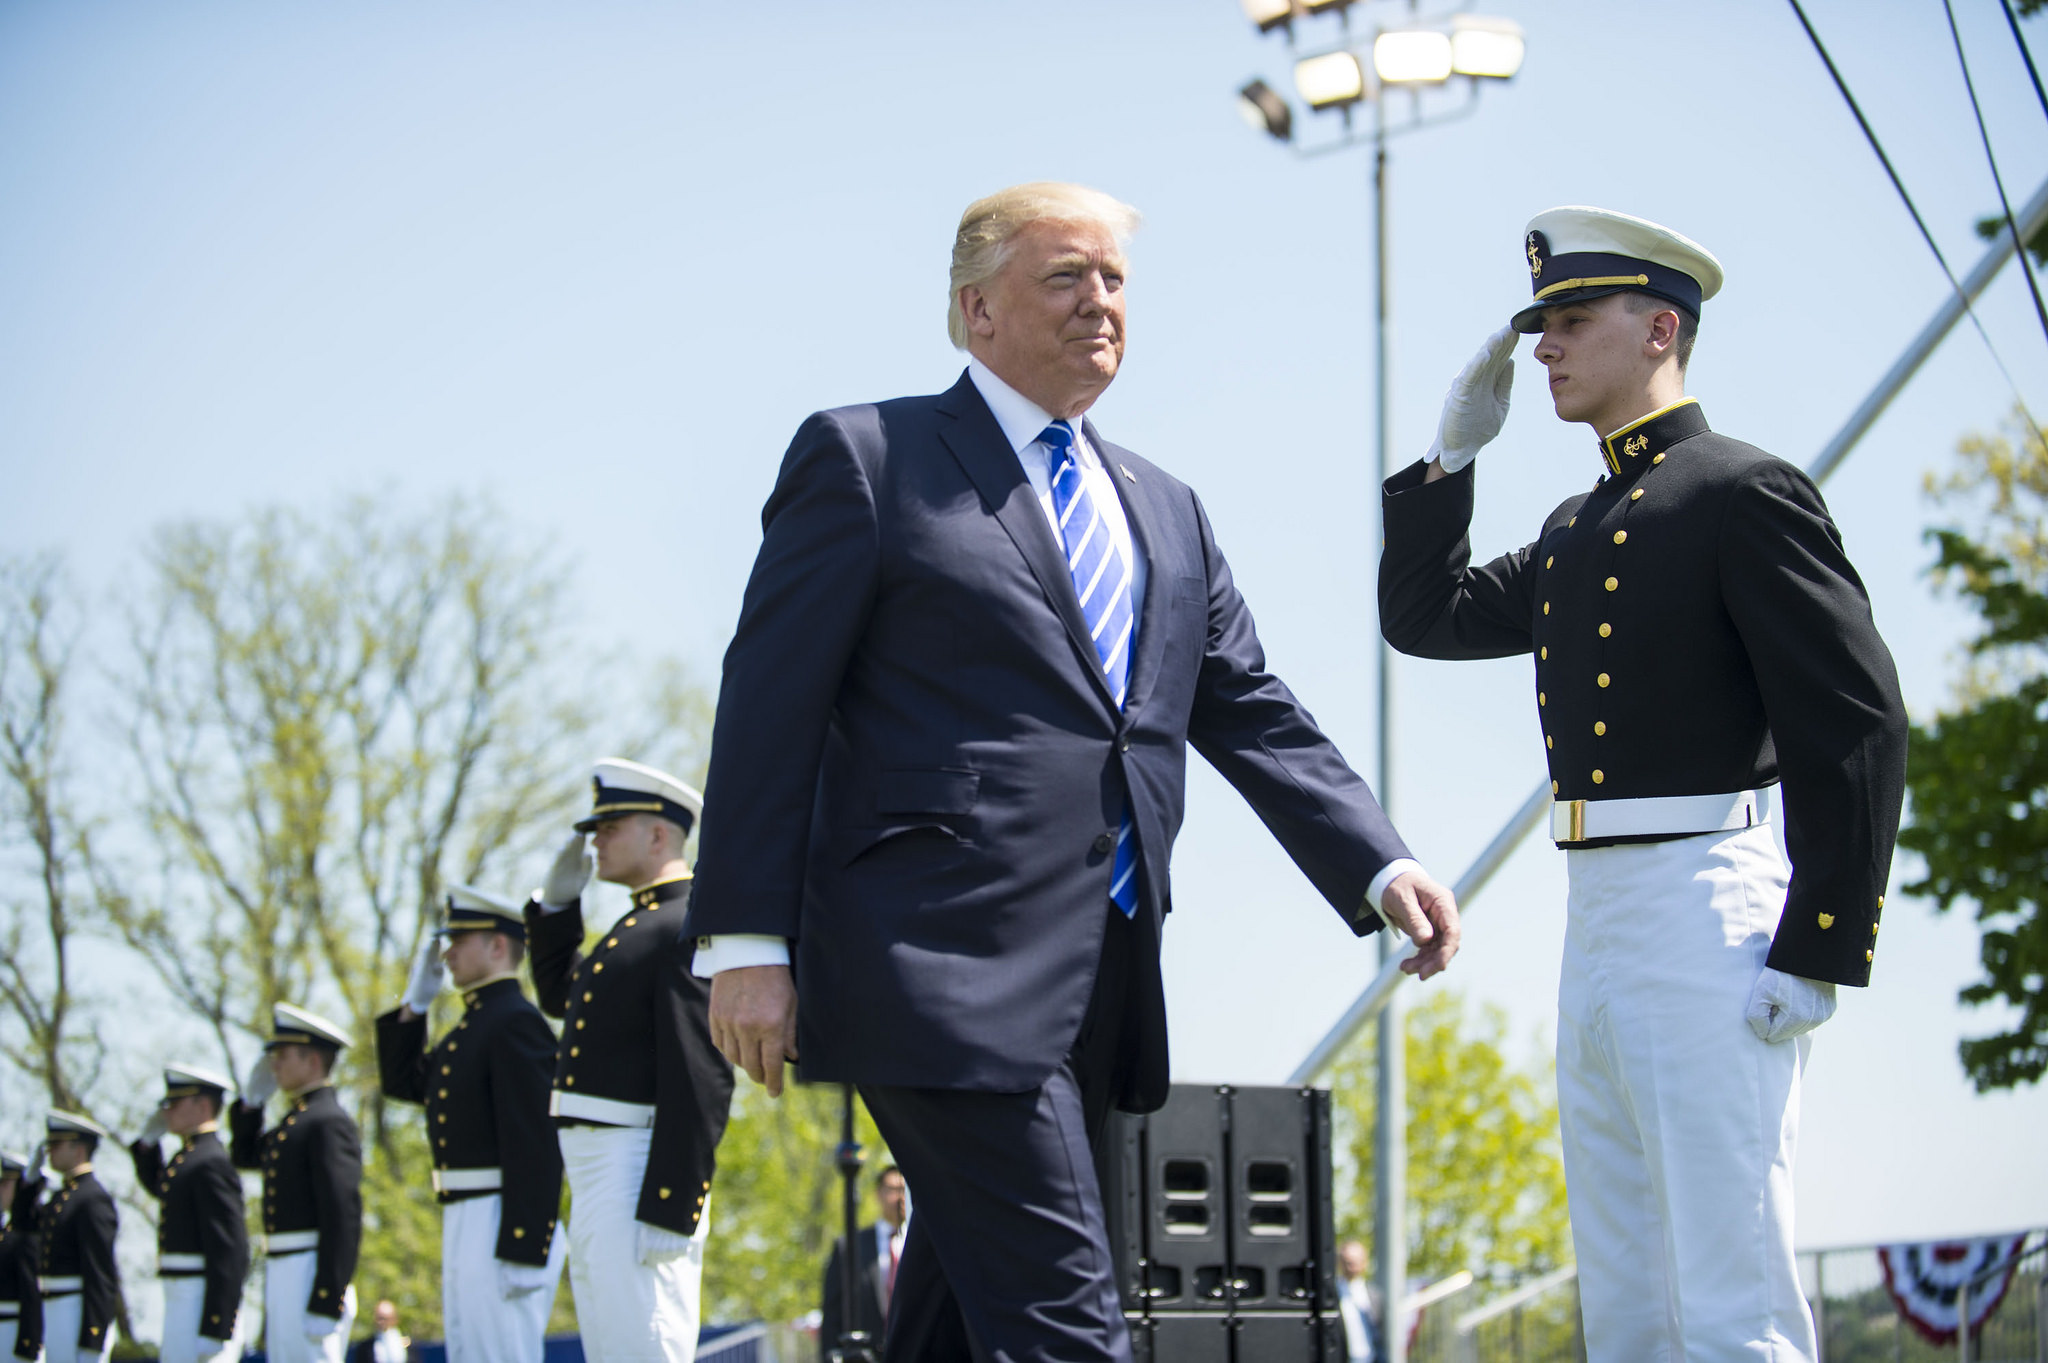 President Donald Trump has a new arms export policy, but what has changed? (Petty Officer 2nd Class Richard Brahm/U.S. Coast Guard)